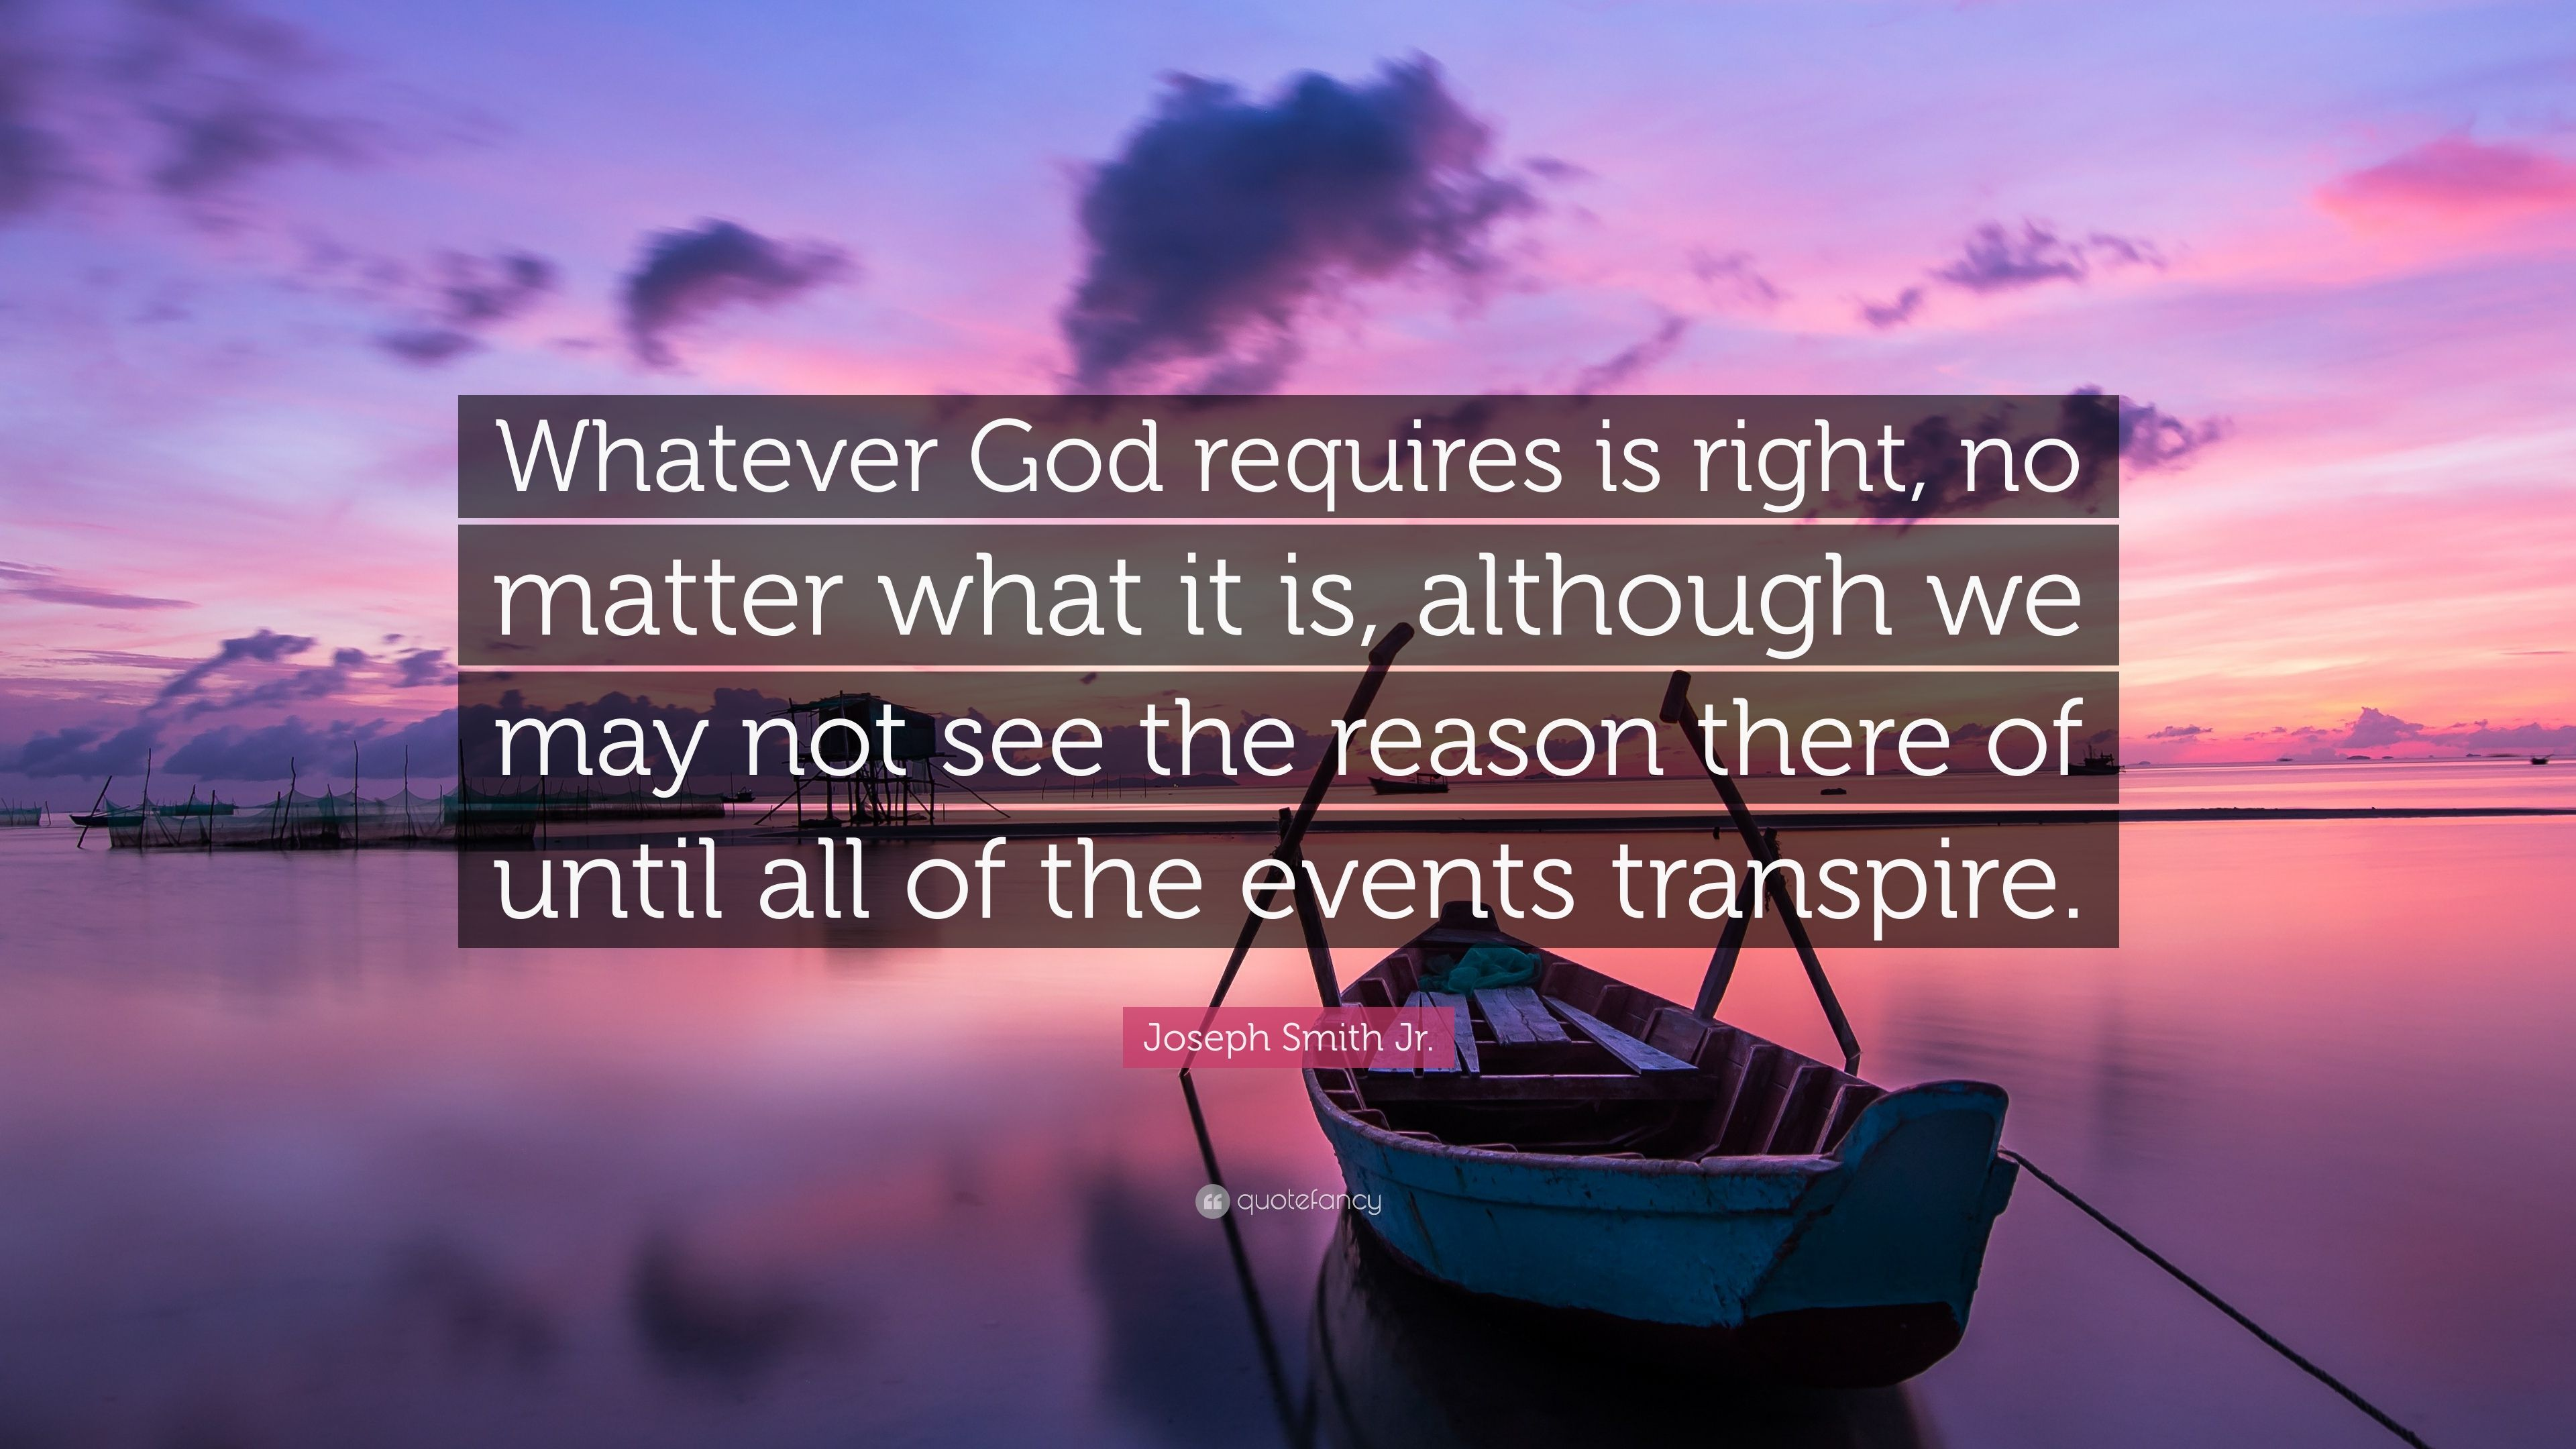 Joseph Smith Jr Quote Whatever God Requires Is Right No Matter What It Is Although We May Not See The Reason Les Brown Quotes Flirting Quotes For Him Life